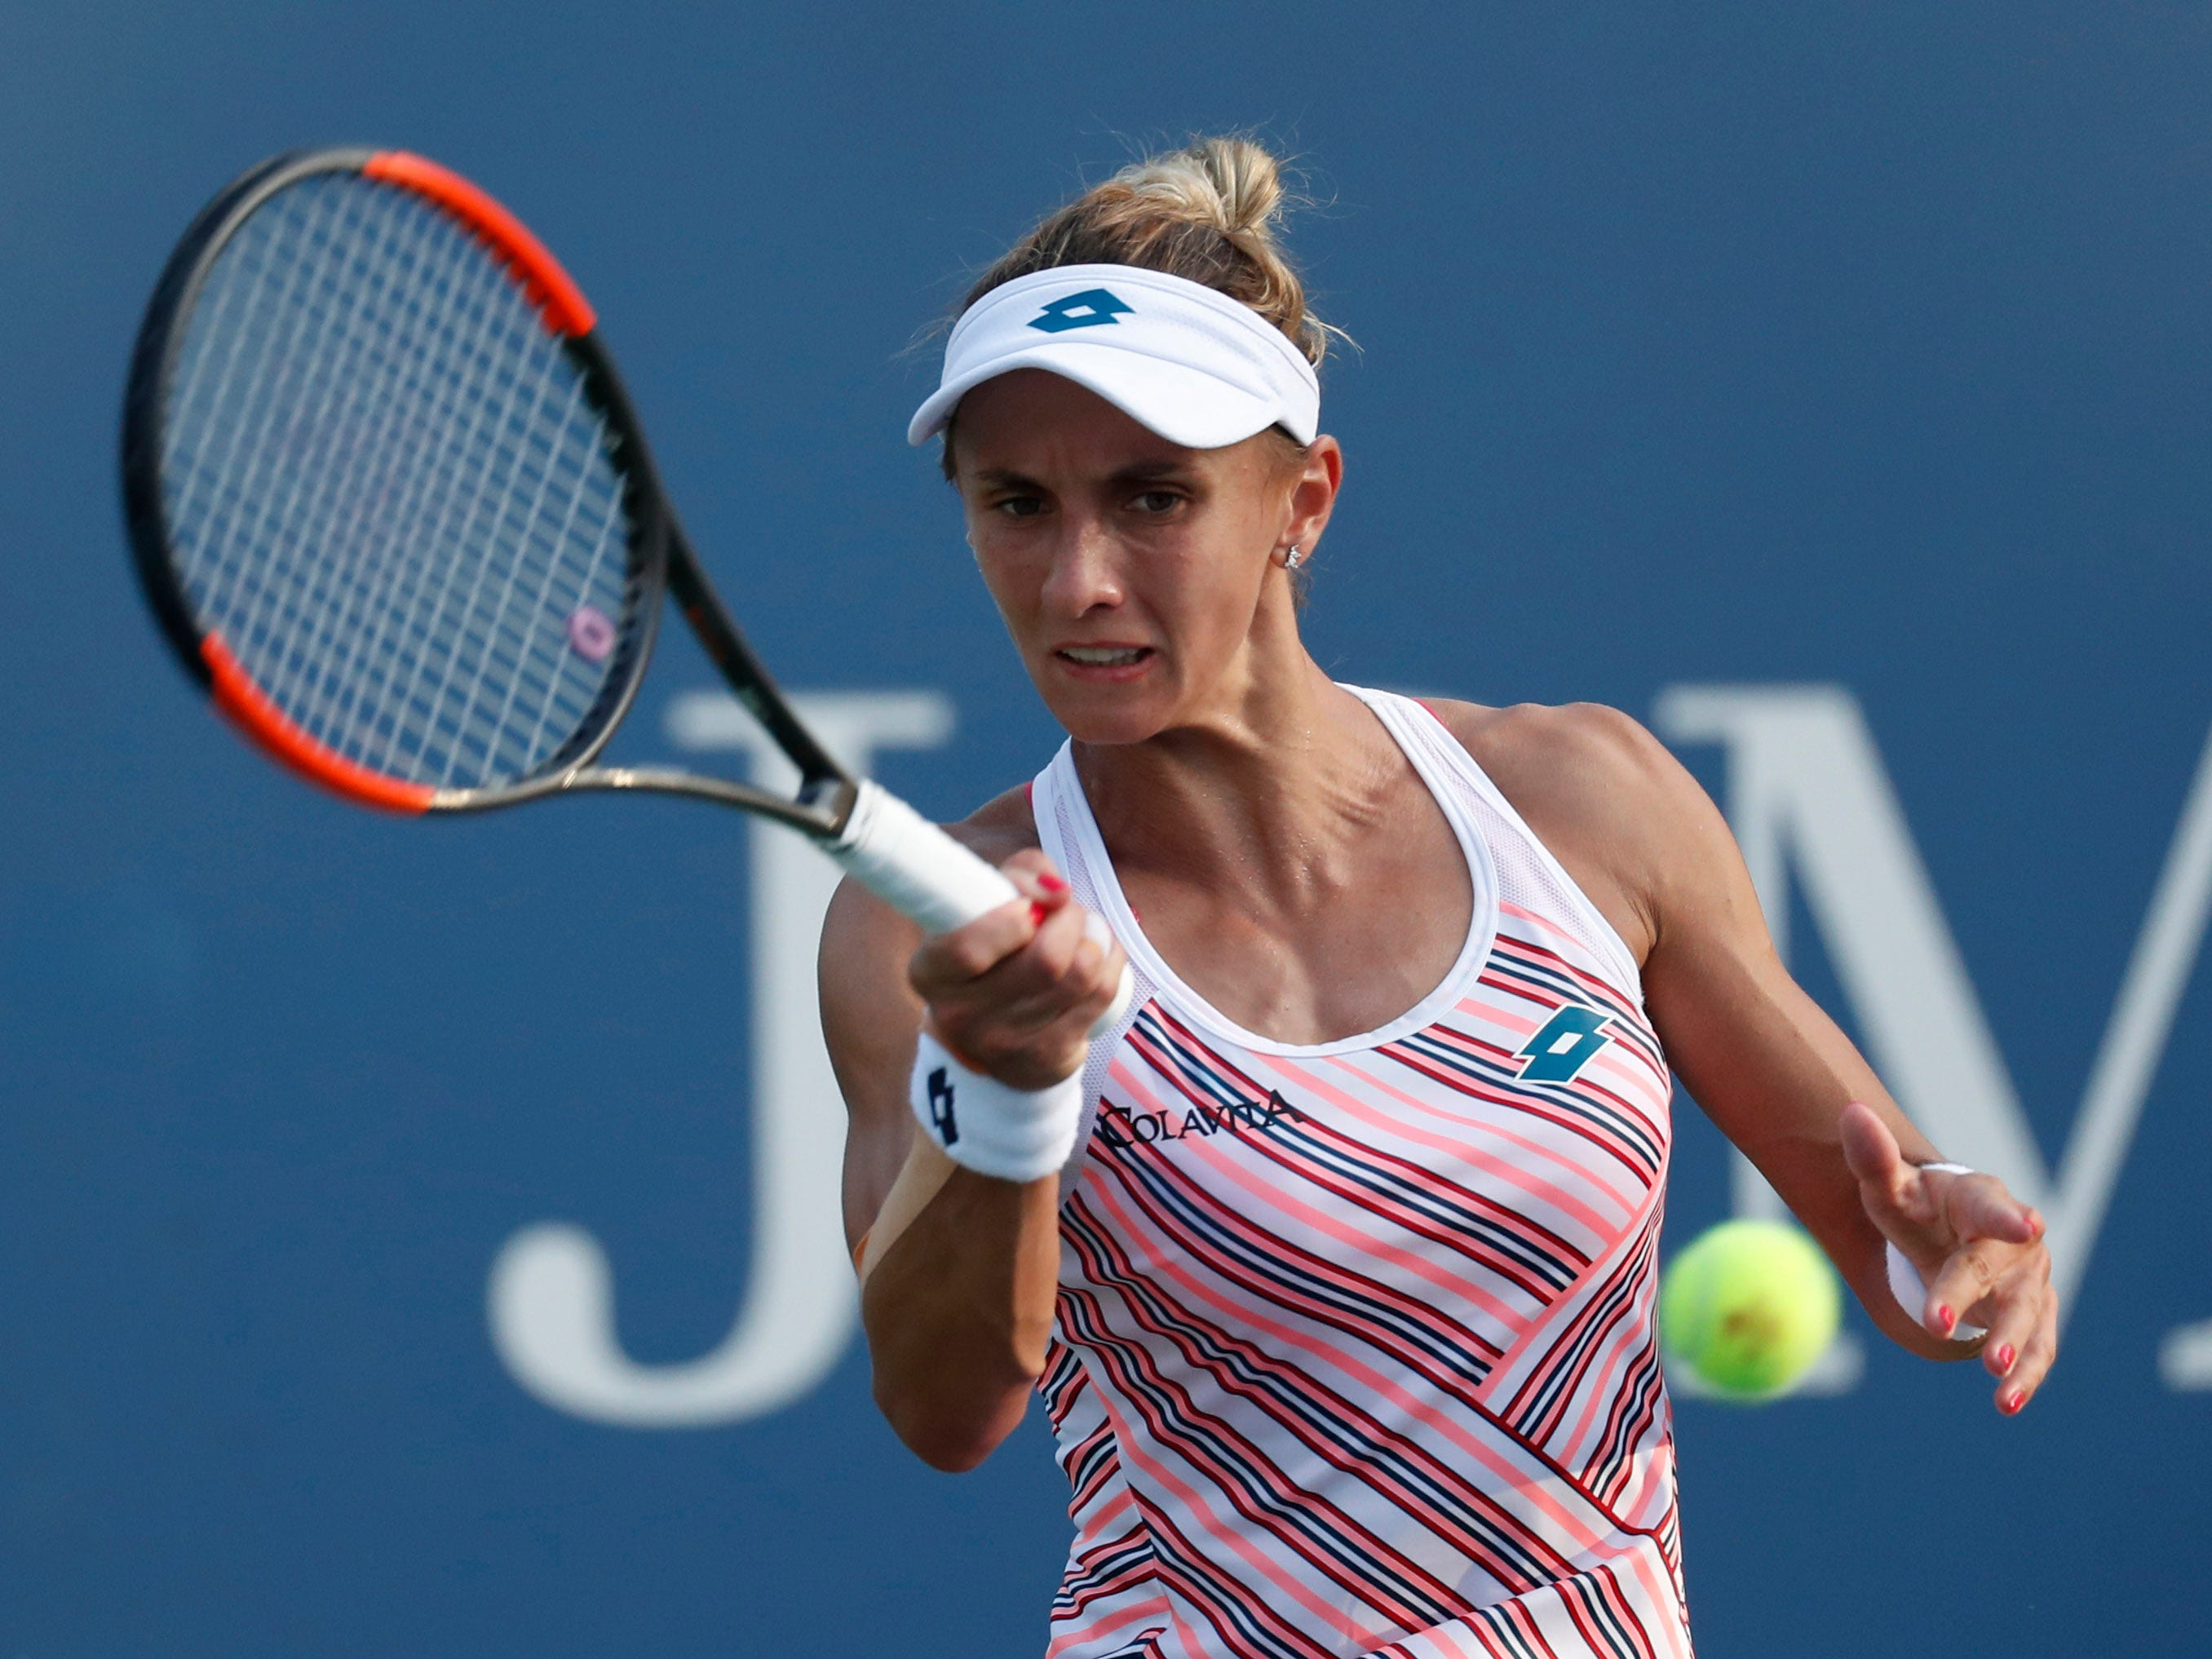 Lesia Tsurenko of Ukraine plays a forehand against Marketa Vondrousova of the Czech Republic during her 6-7 (7-3). 7-5, 6-2 fourth-round win.